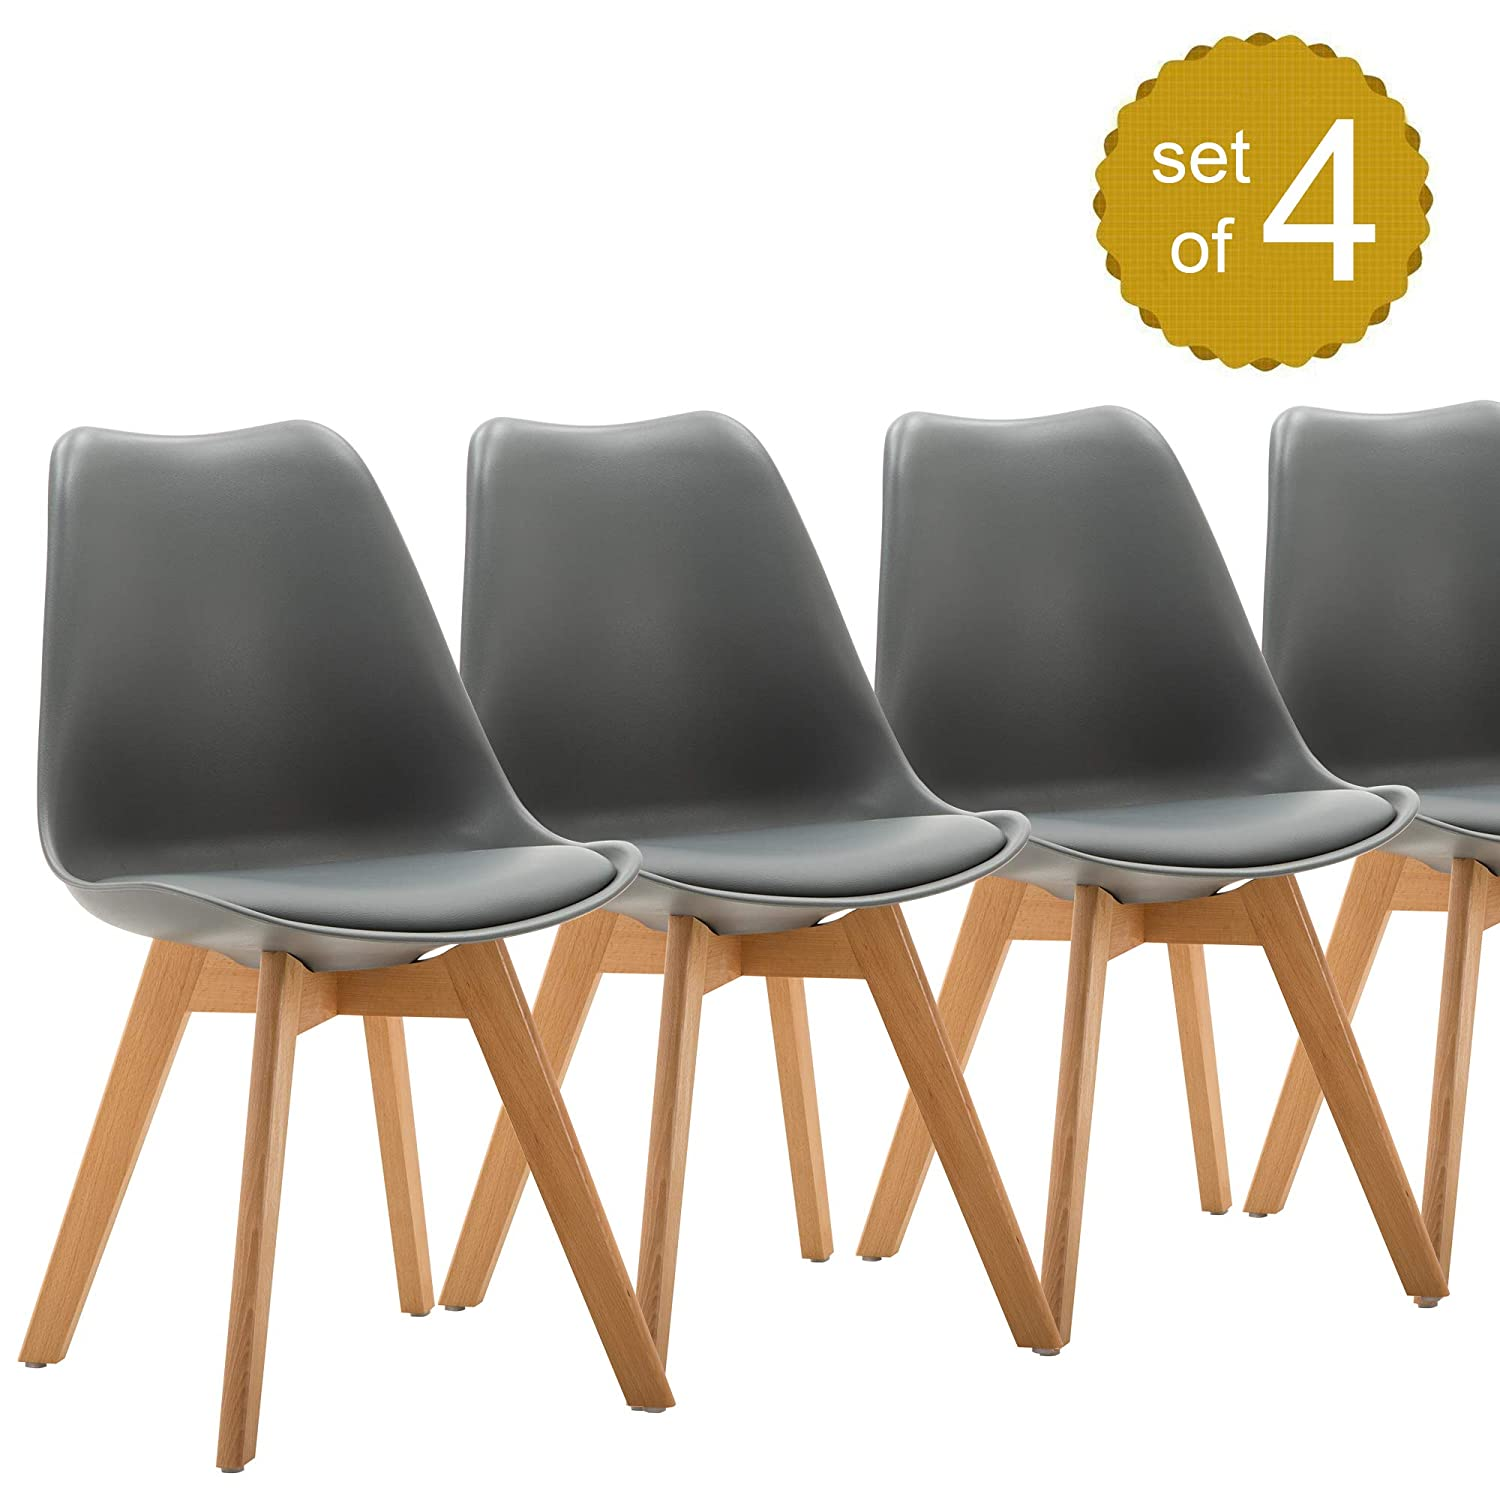 Pleasant Dining Chair Set Of 4 Modern Style Side Chairs Mid Century Modern Kitchen Chairs Lounge Leather Chair For Kitchen Dining Bedroom Living Room Bralicious Painted Fabric Chair Ideas Braliciousco